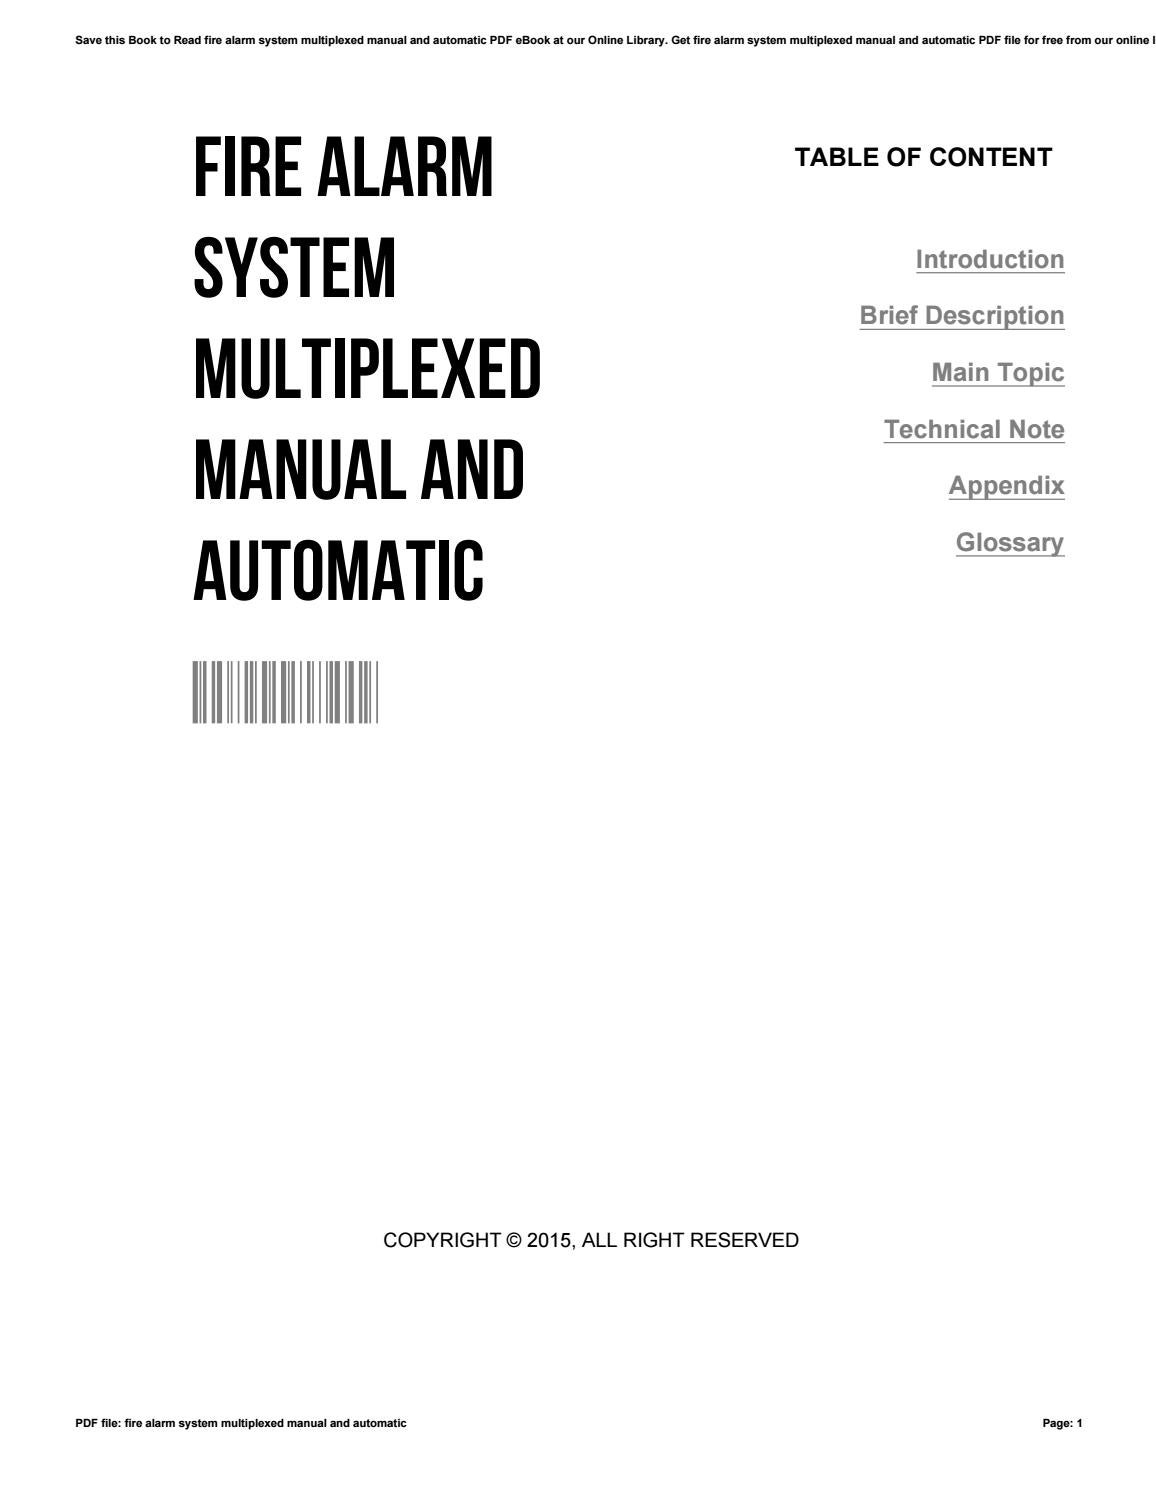 Fire alarm system multiplexed manual and automatic by